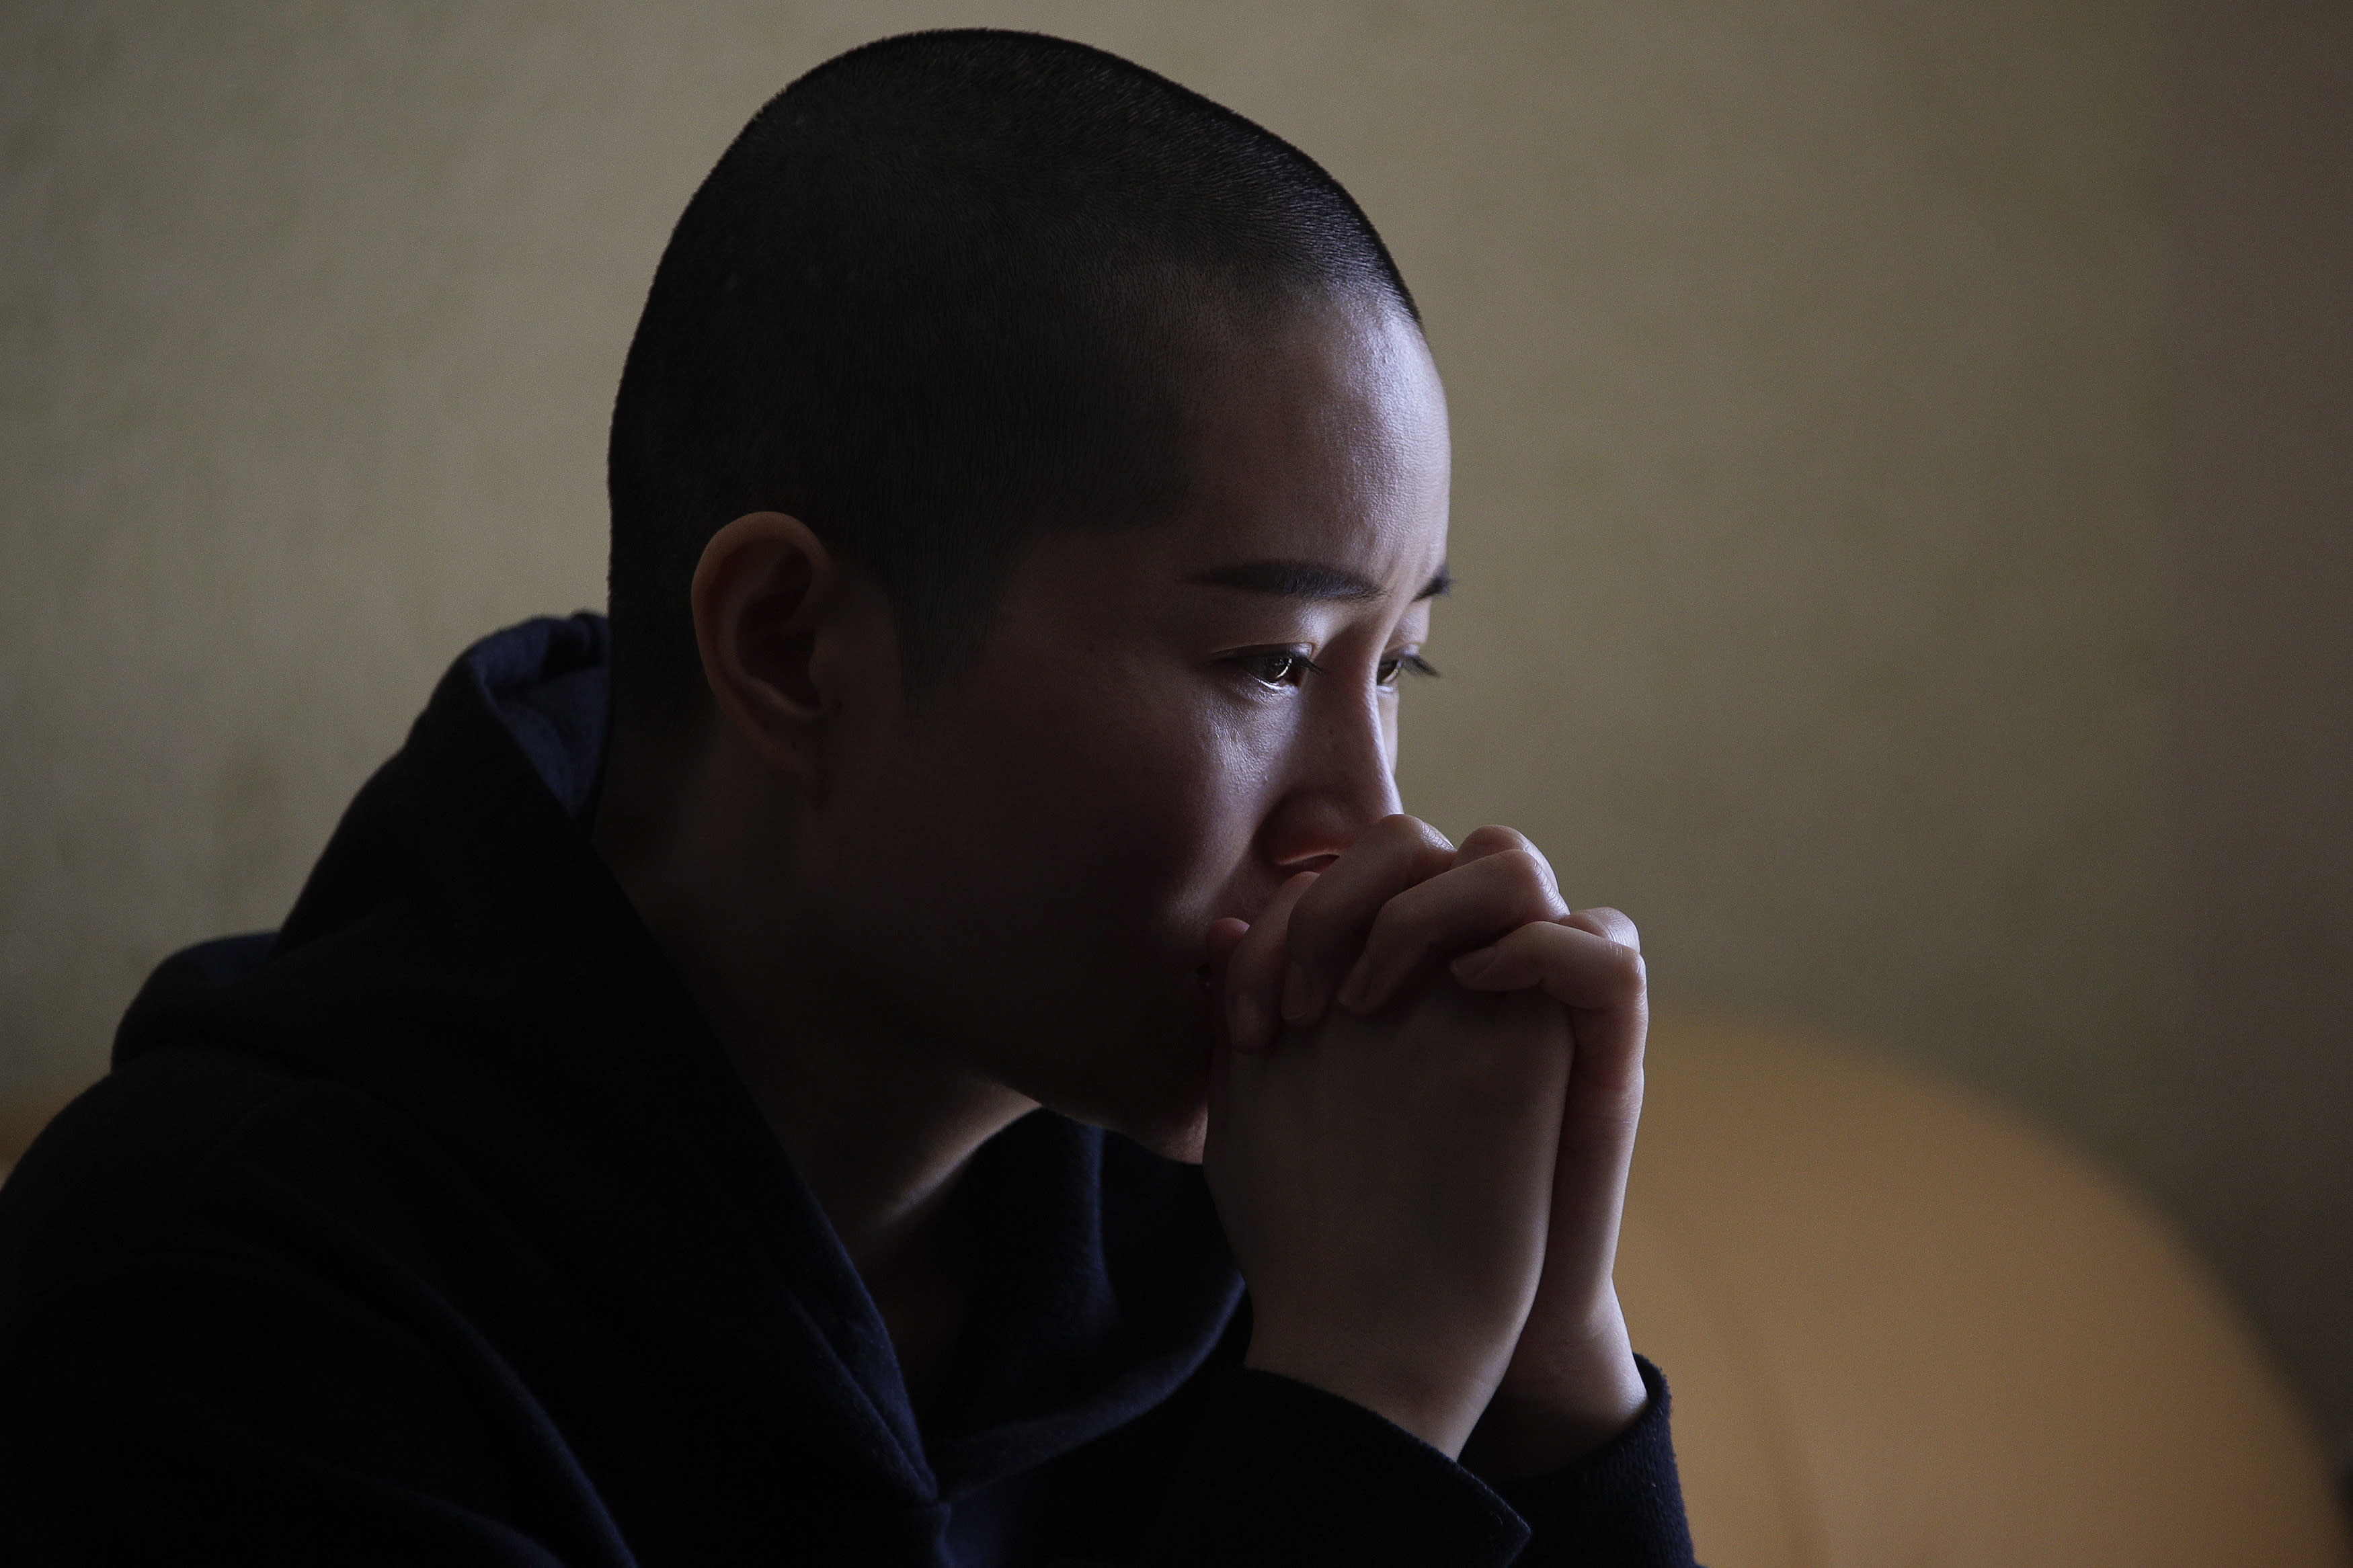 Li Wenzu, wife of prominent Chinese human rights lawyer Wang Quanzhang reacts after Wang's sentencing, at her house in Beijing, Monday, Jan. 28, 2019. Wang was sentenced to 4 and half years in prison on the charge of subversion of state power Monday, more than three years after he was detained in a wide-ranging crackdown on the legal profession. (AP Photo/Andy Wong)